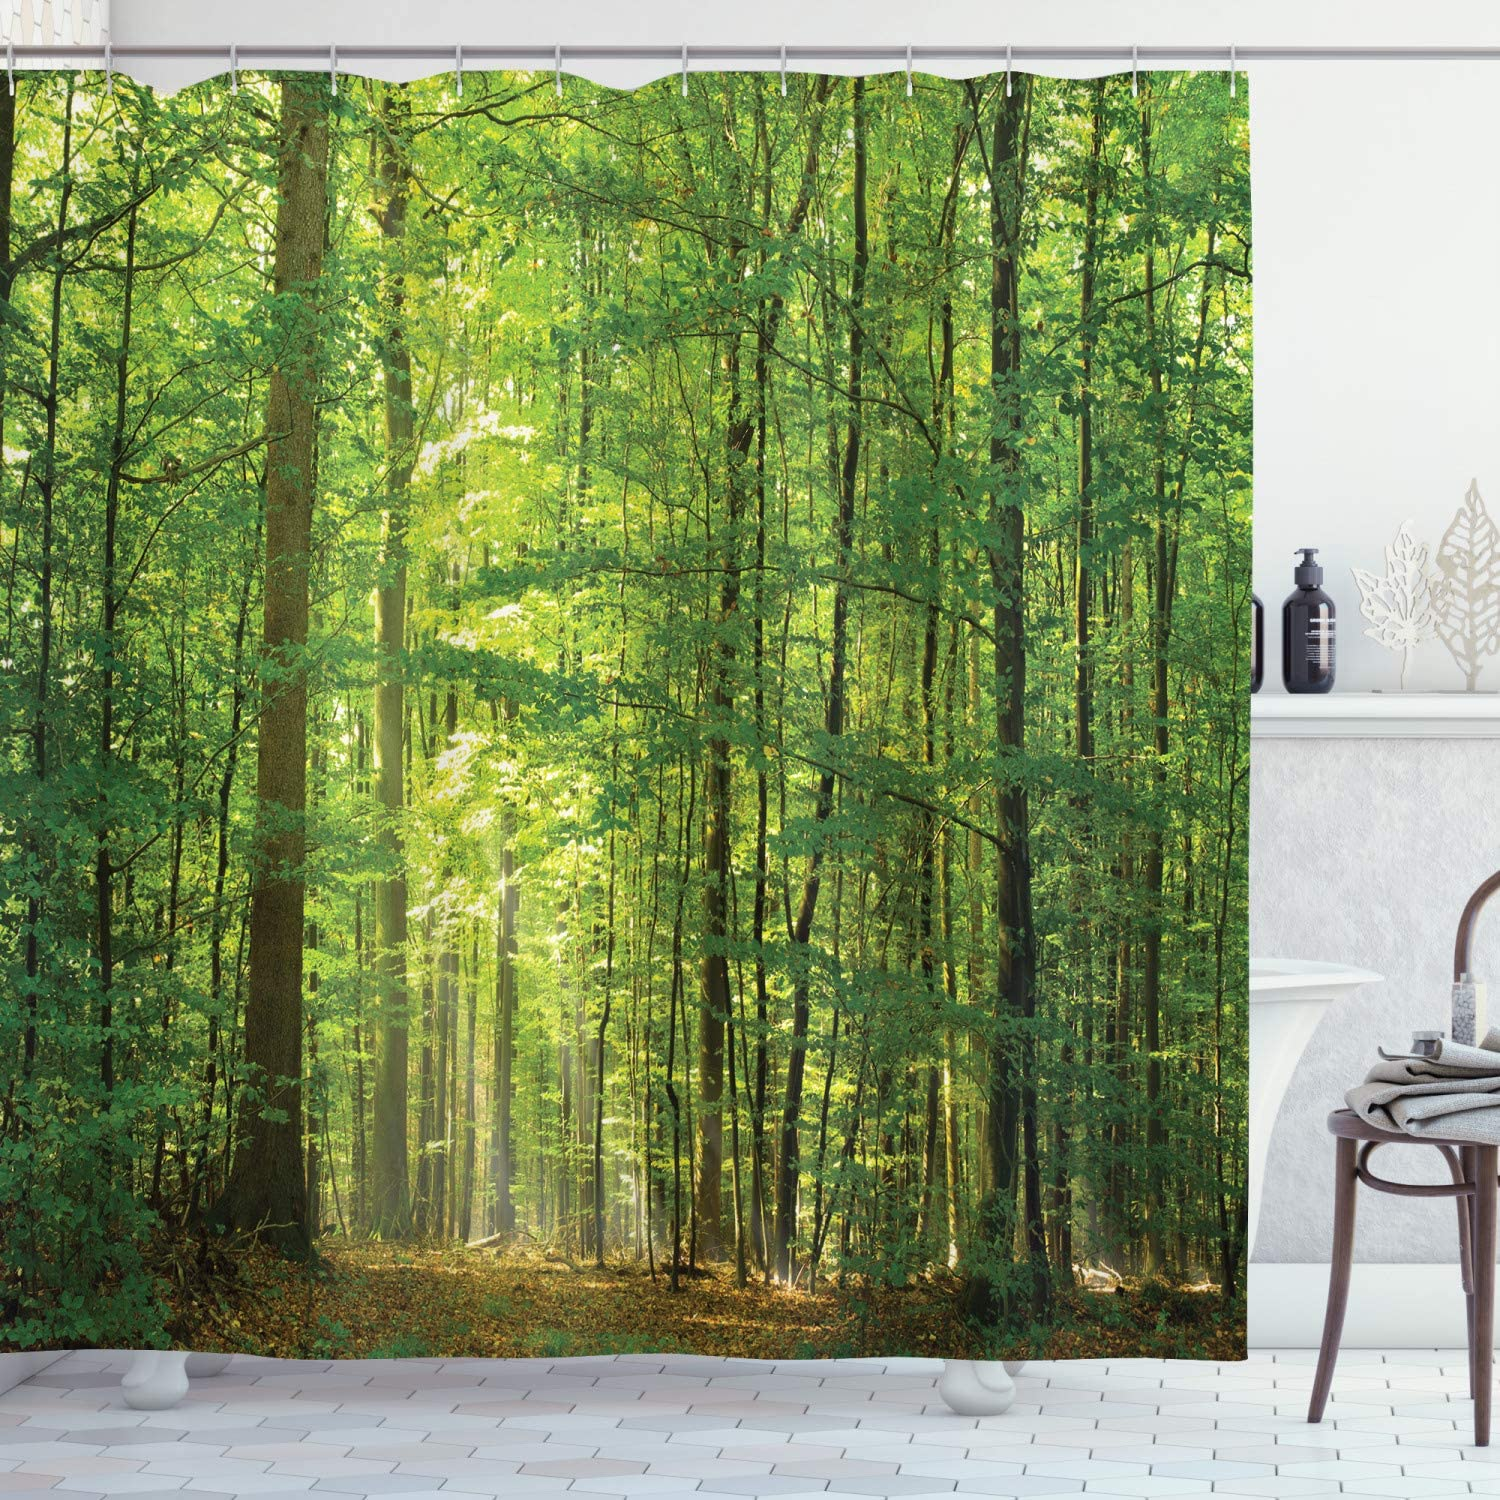 """Ambesonne Woodland Shower Curtain, Deciduous Forest Trees in Summertime Foliage Sun Rays Romantic Holidays Scenic Image, Cloth Fabric Bathroom Decor Set with Hooks, 70"""" Long, Green Yellow"""